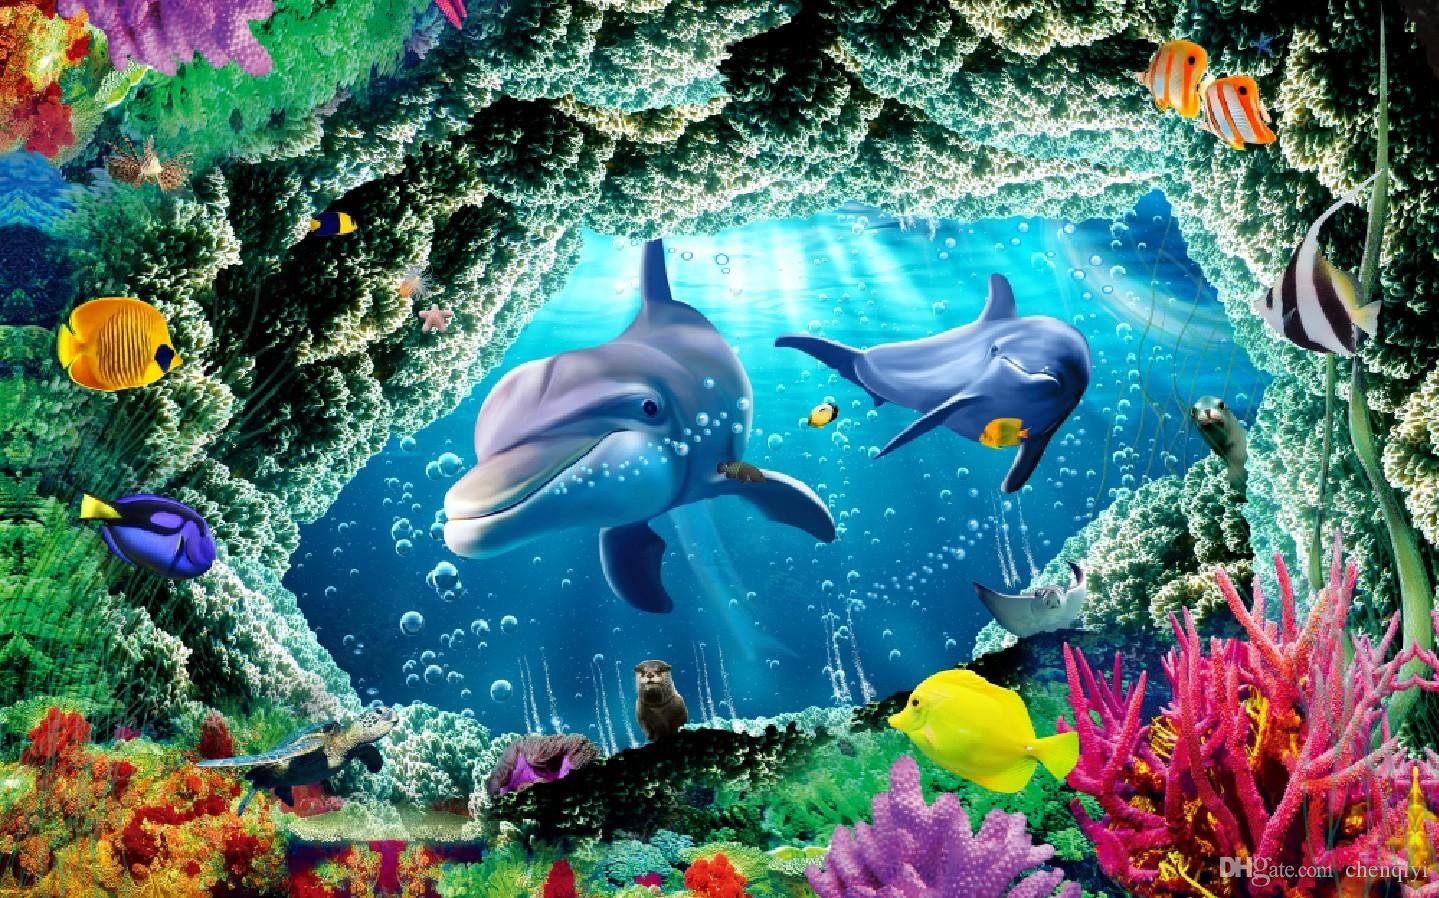 custom large murals fabric wallpaper 3d wall paper sitting room custom large murals fabric wallpaper 3d wall paper sitting room bedroom tv sofa background under sea world cute dolphins seafloor rock hole wallpapers hq